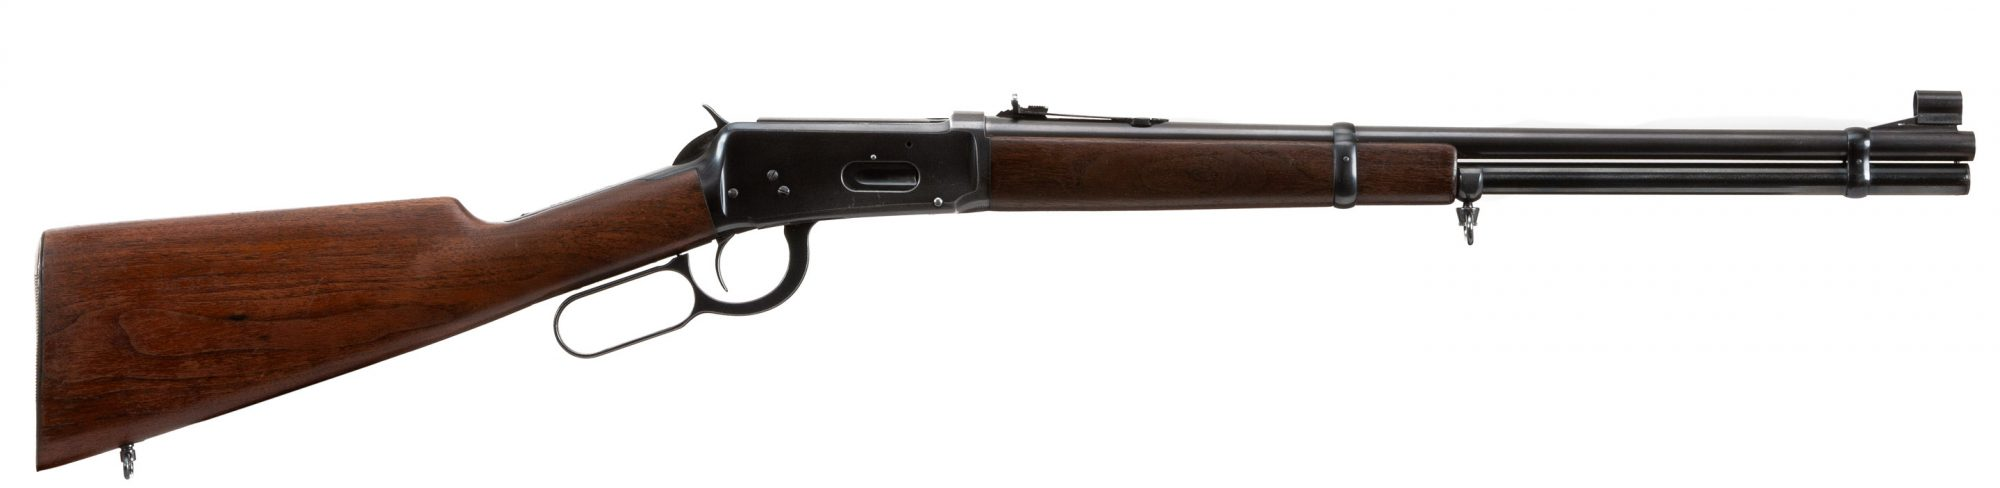 Photo of a pre-owned Winchester Model 94 Carbine from circa 1943-45, for sale by Turnbull Restoration of Bloomfield, NY